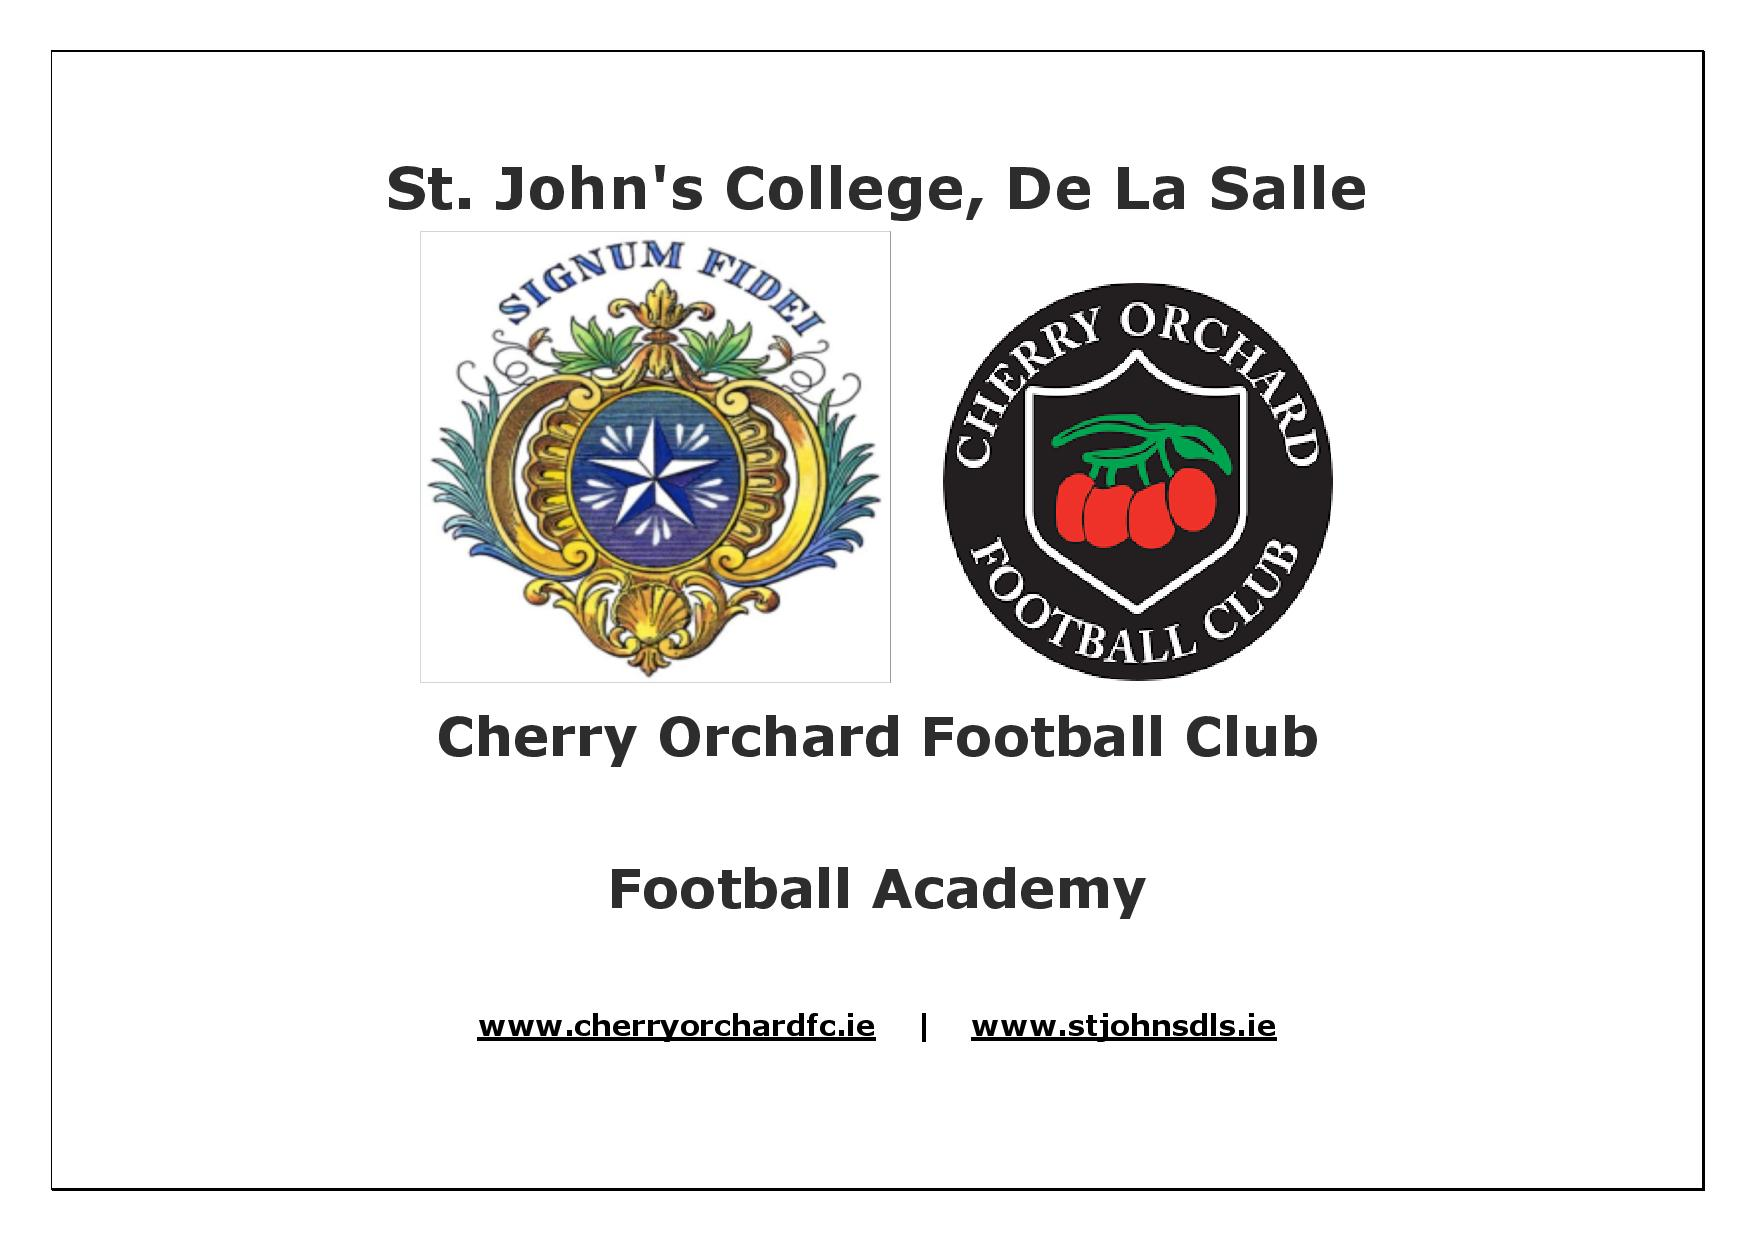 St-Johns-College-De-La-Salle-Cherry-Orchard-FC-Partnership-Sign-WEBSITE